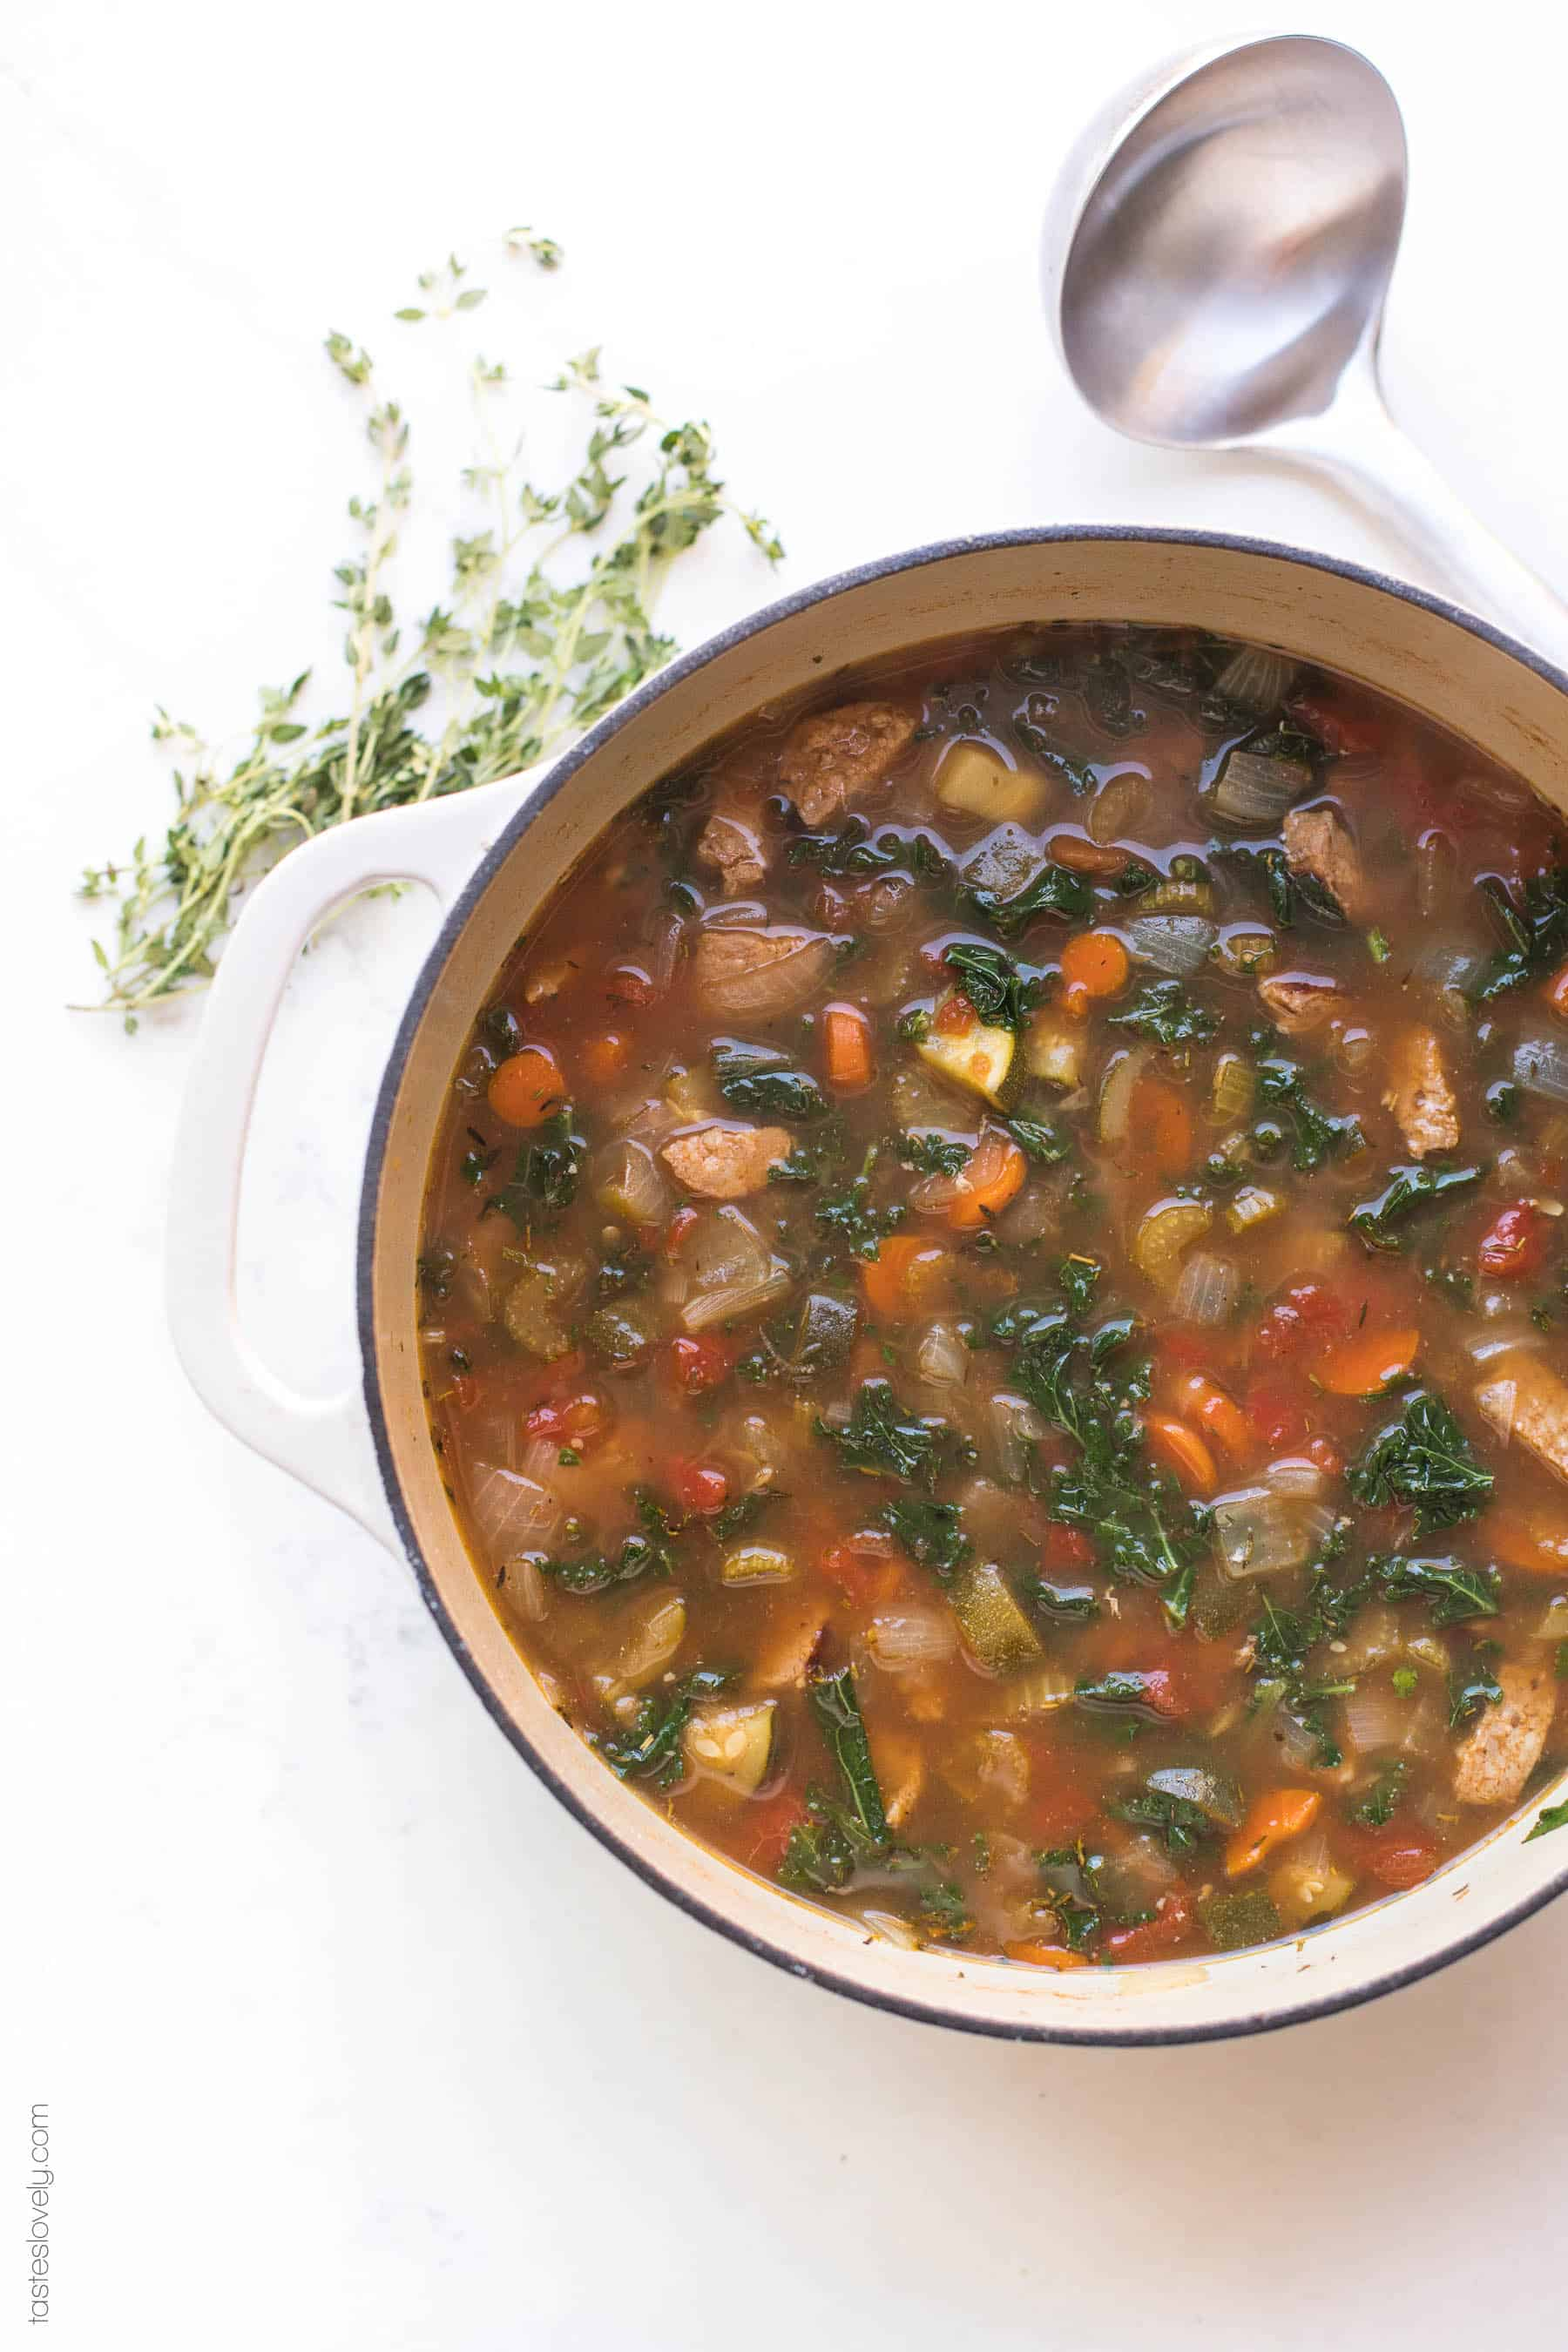 A dutch oven filled with sausage and kale vegetable soup